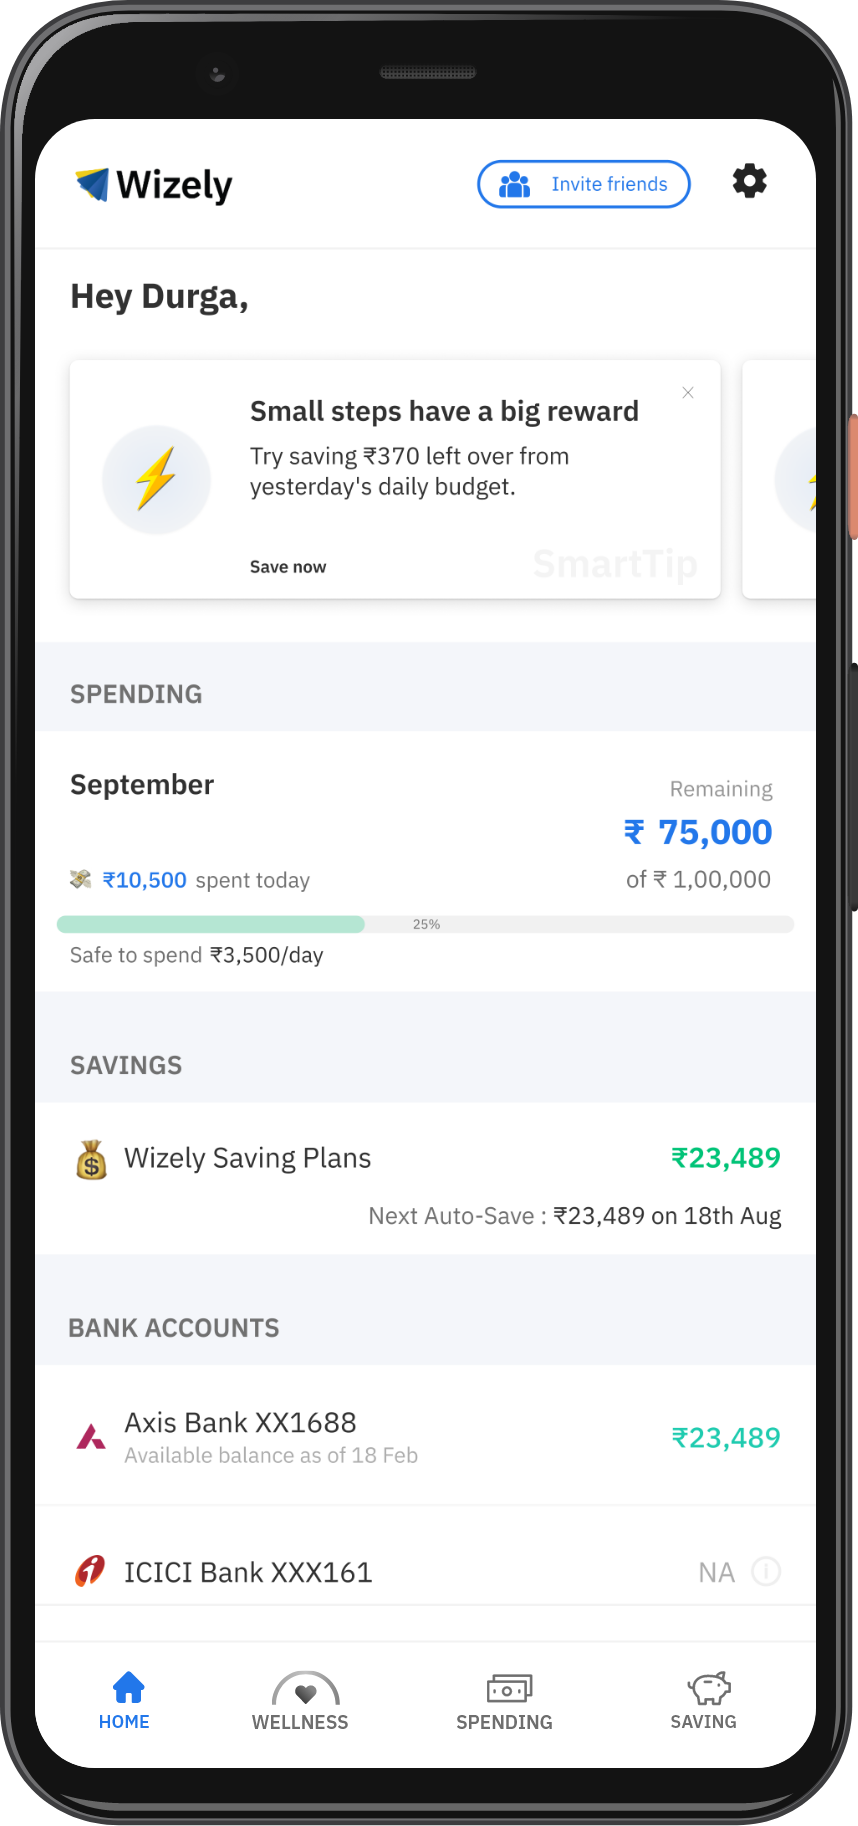 Use Wizely to make smarter financial decisions